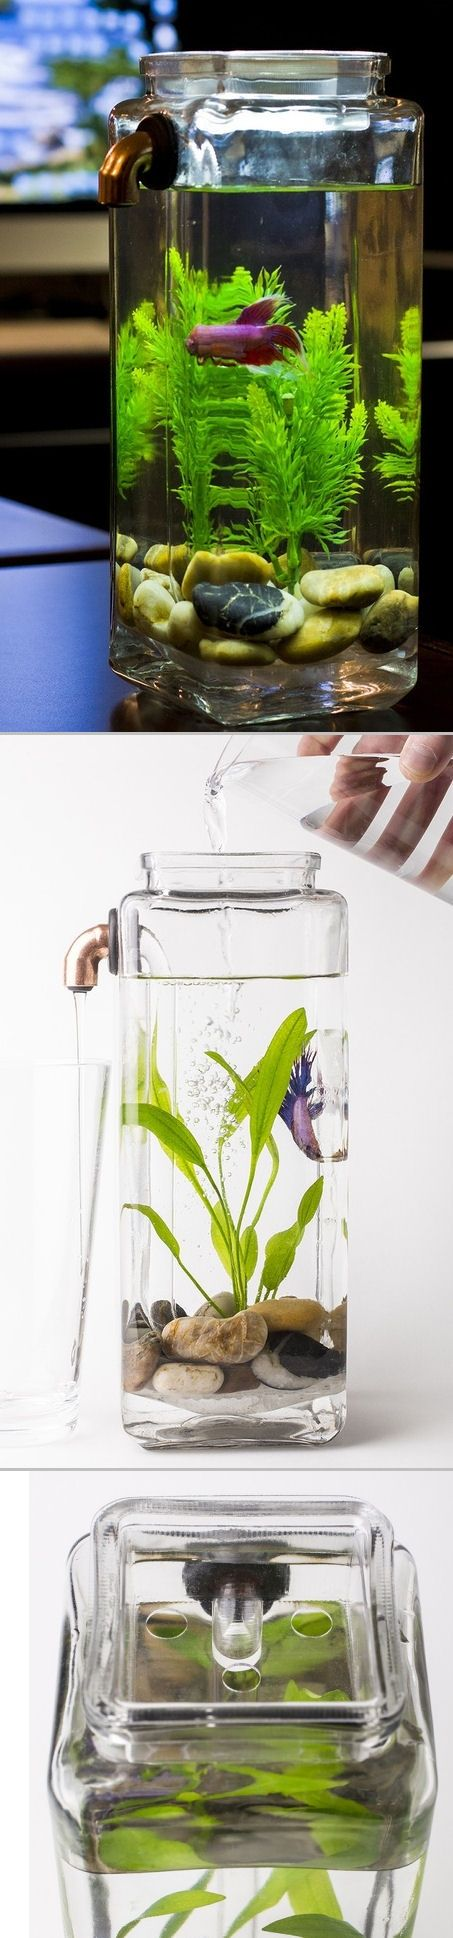 Self Cleaning Betta Aquarium Simply Pour Fresh Water In